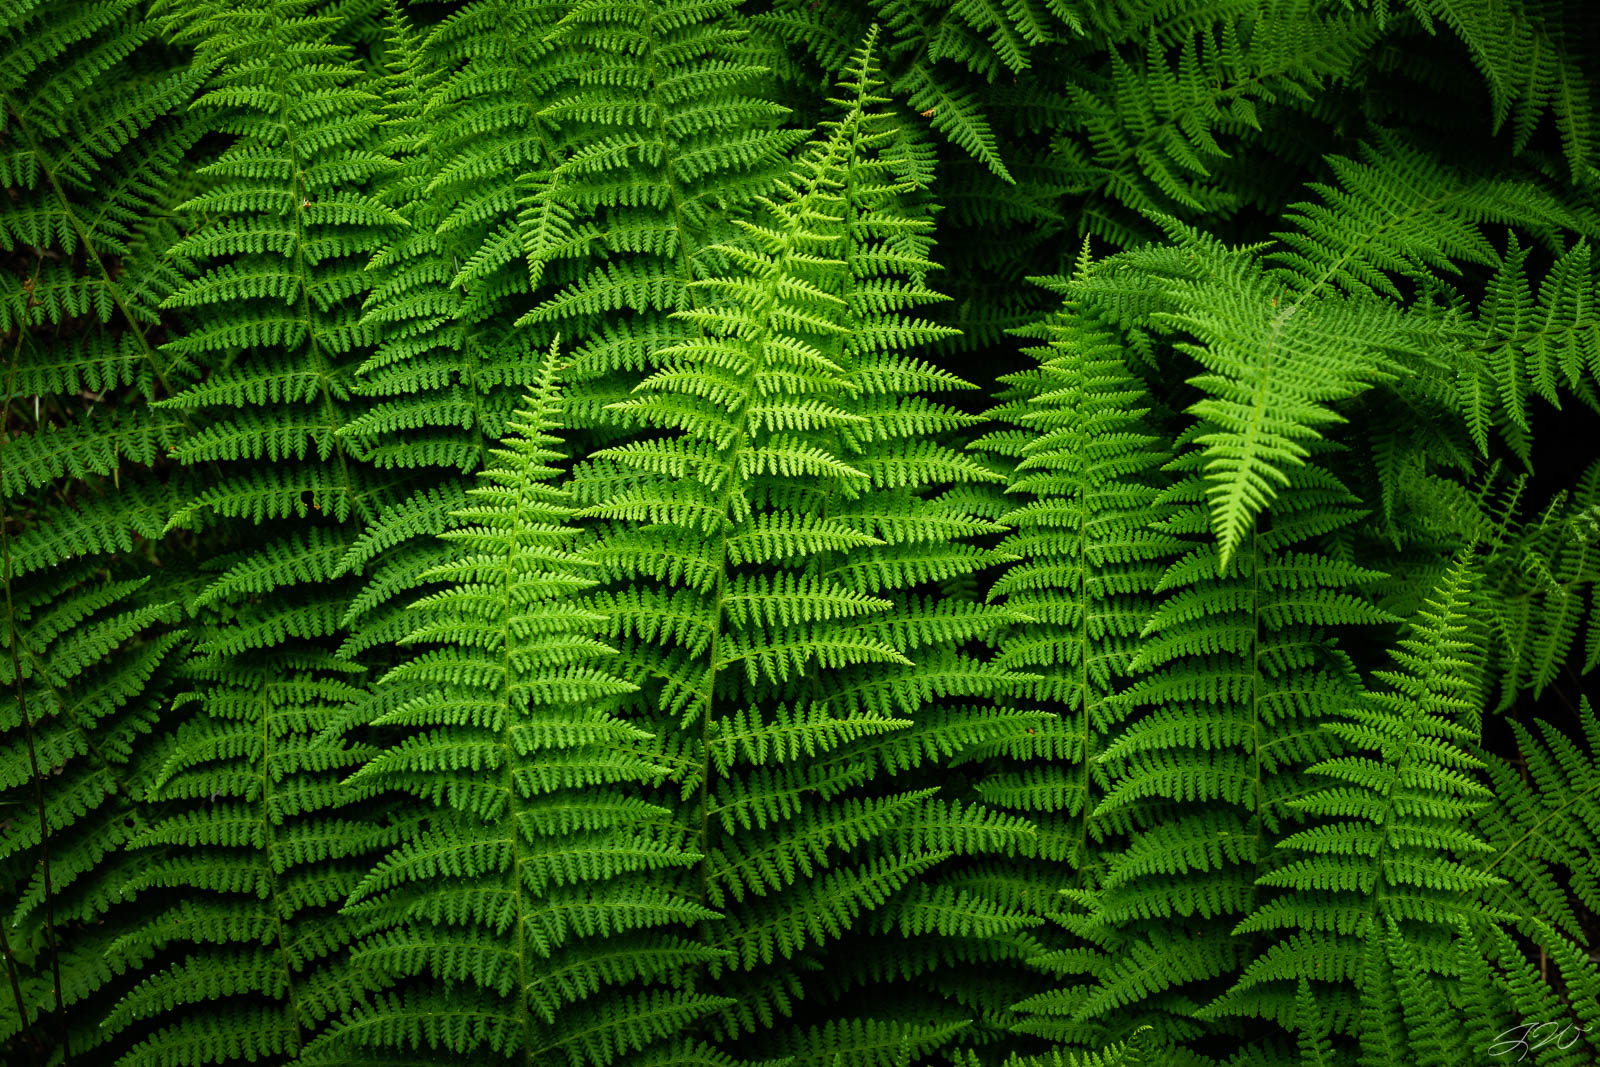 Fine Art Limited Edition of 100. An intimate view of lush ferns on the forest floor. Due to the dense shade in this specific...